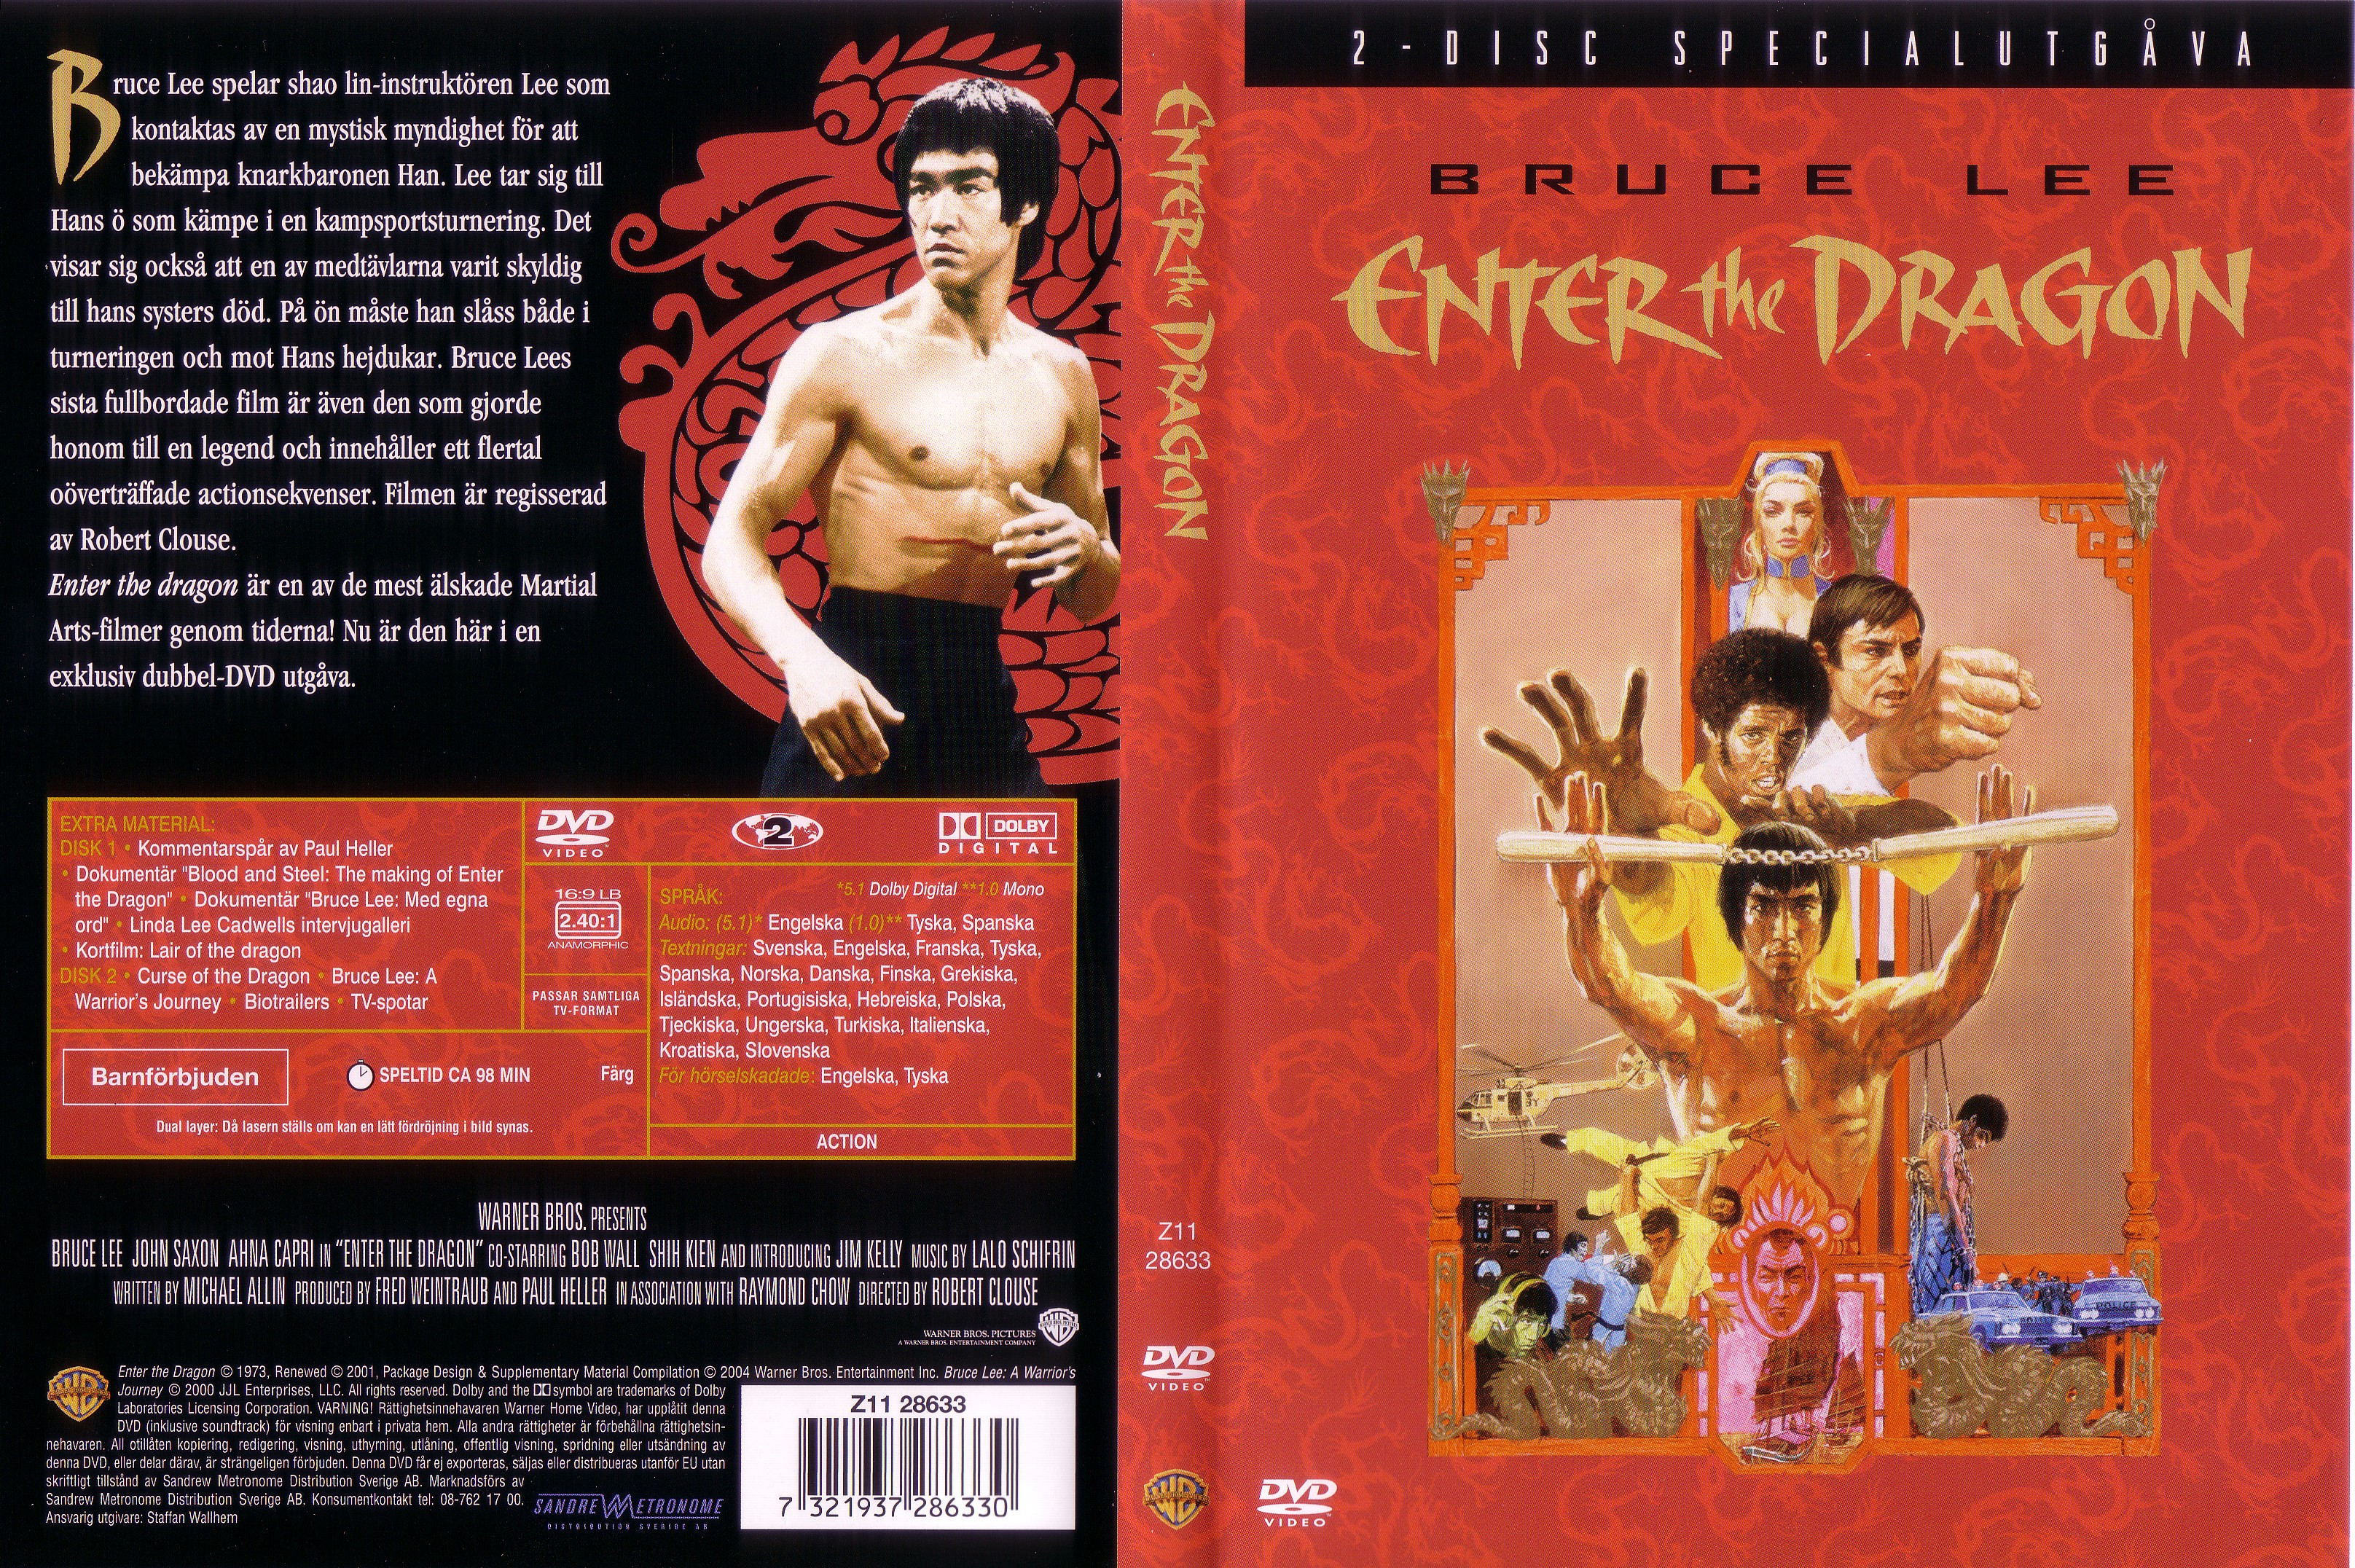 Ideal Enter the dragon naked scene are also